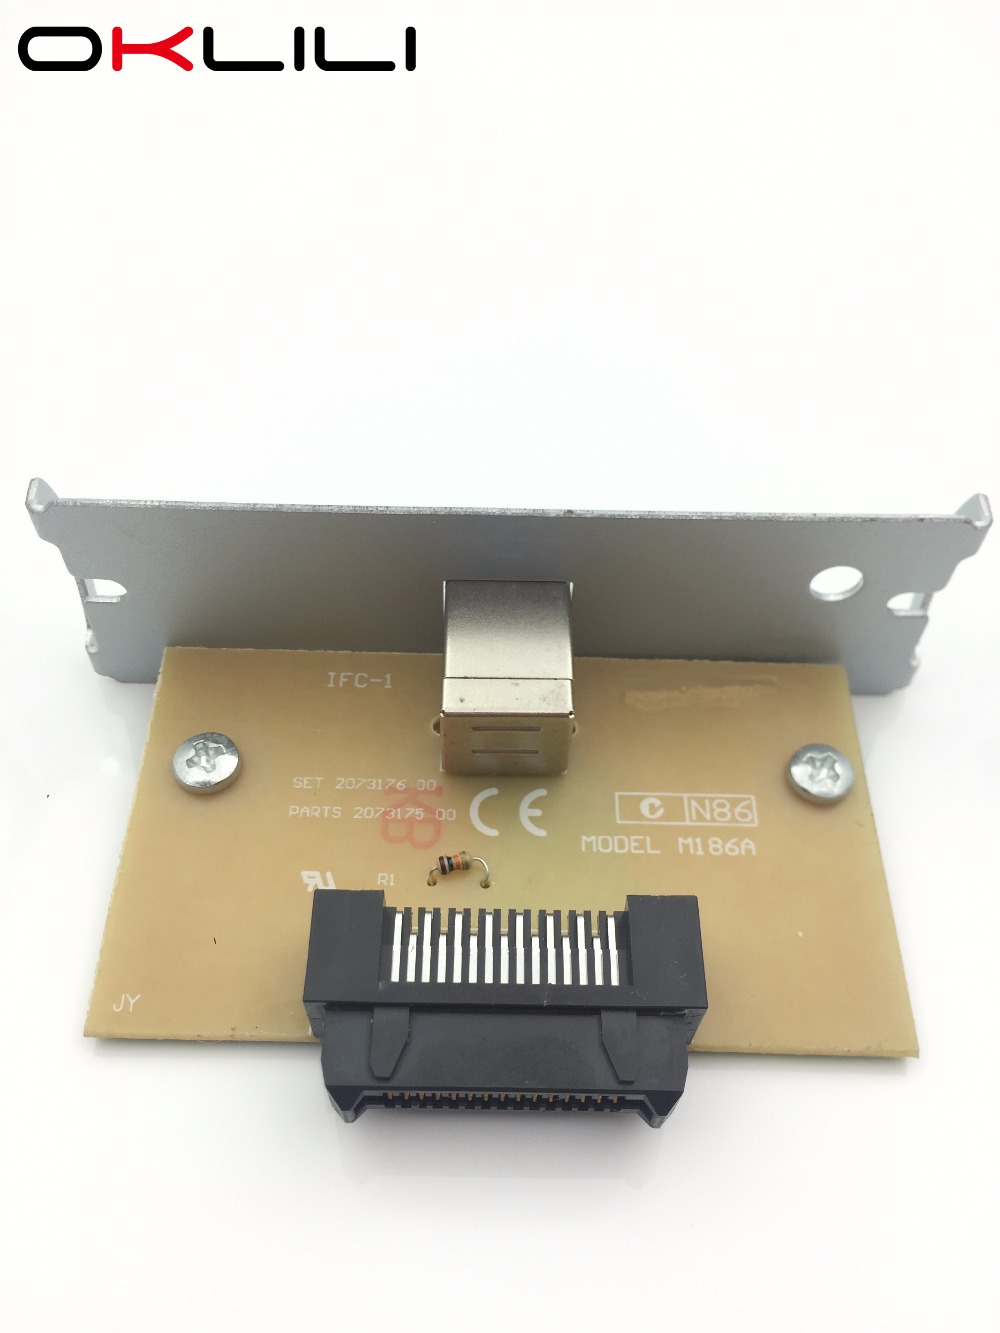 UB-U05 M186A C32C823991 A371 USB Port Interface Card for Epson TM-T88V TM-H6000IV TM-T88IV T88V H6000IV TM-T81 TM-T70 T81 T70